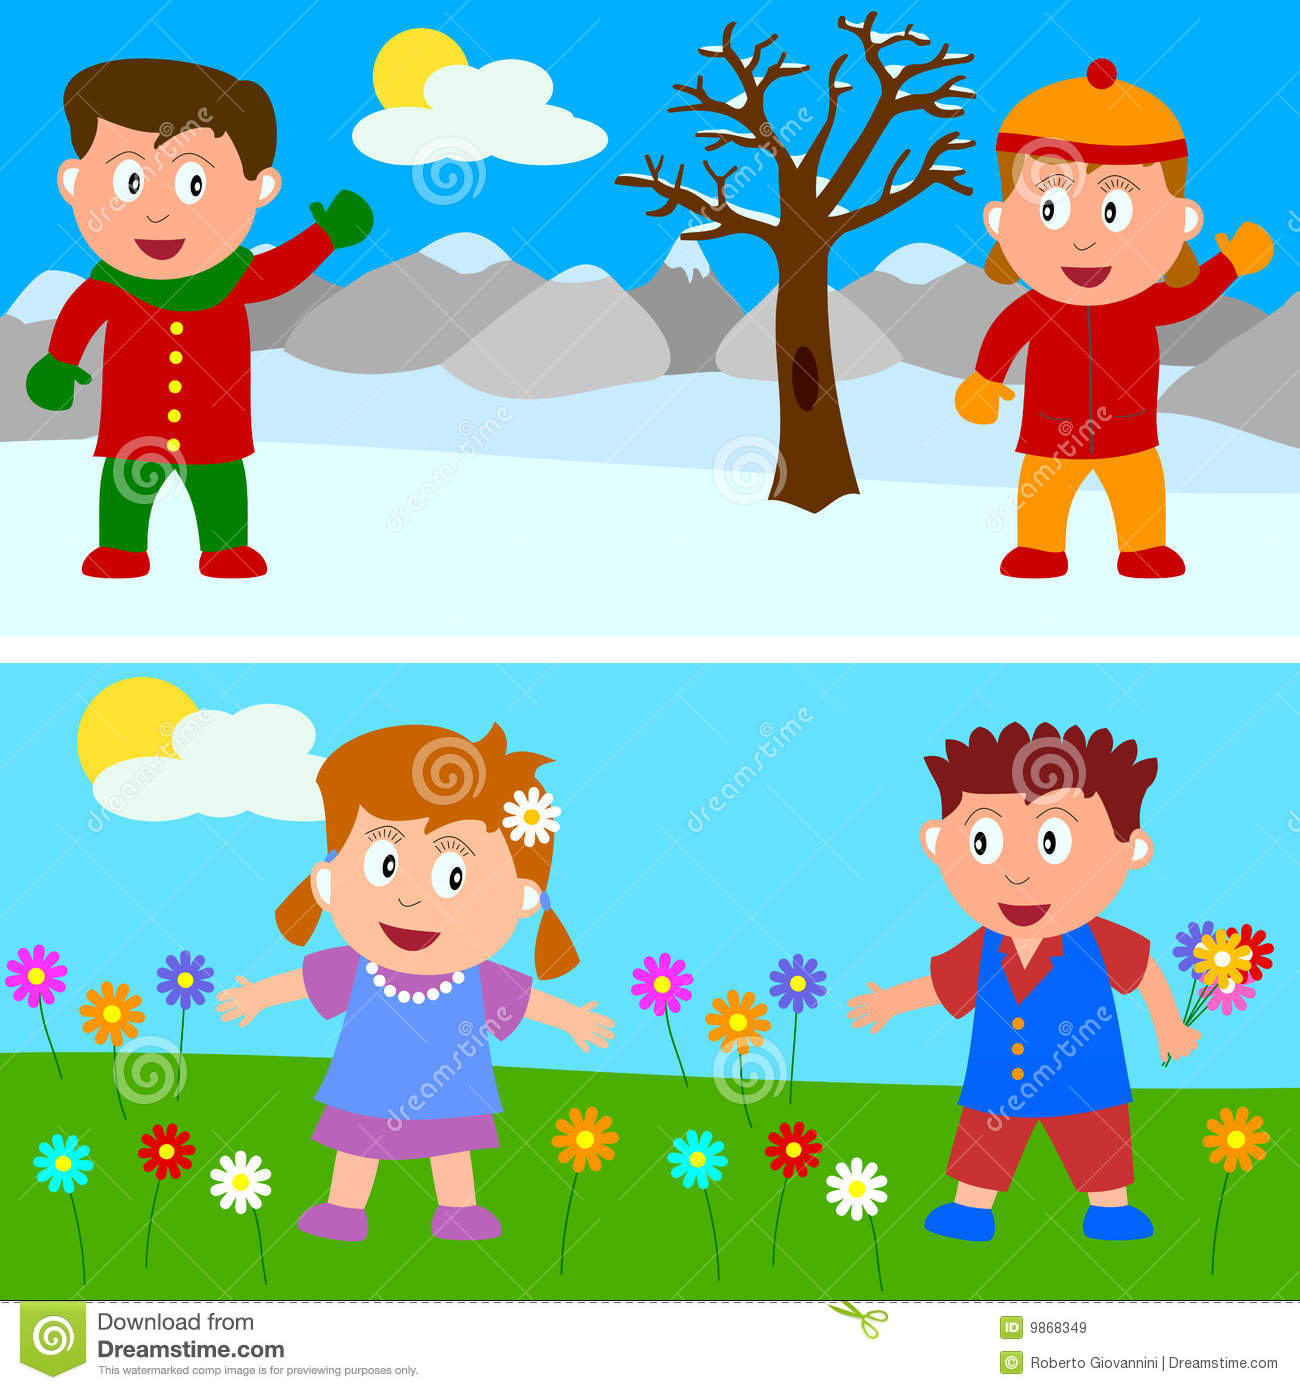 winter spring kids banner royalty free stock images - Spring Pictures For Kids